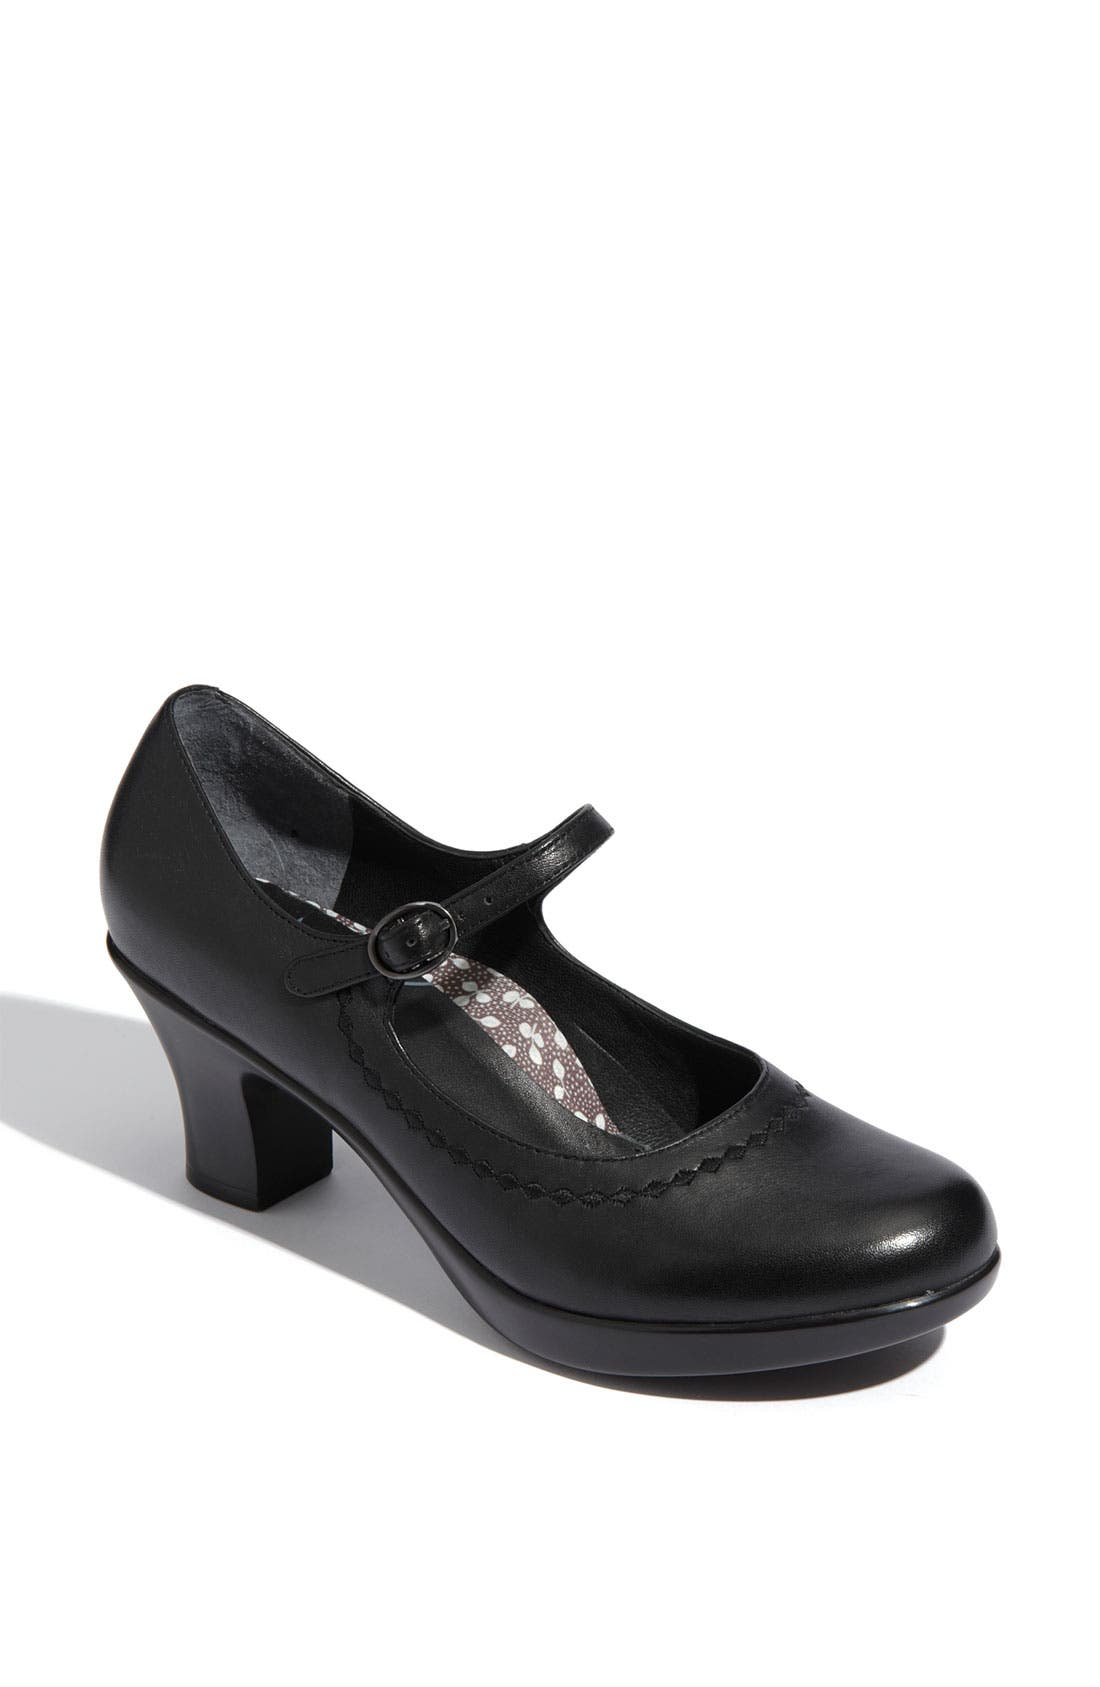 Main Image - Dansko 'Bett' Mary Jane